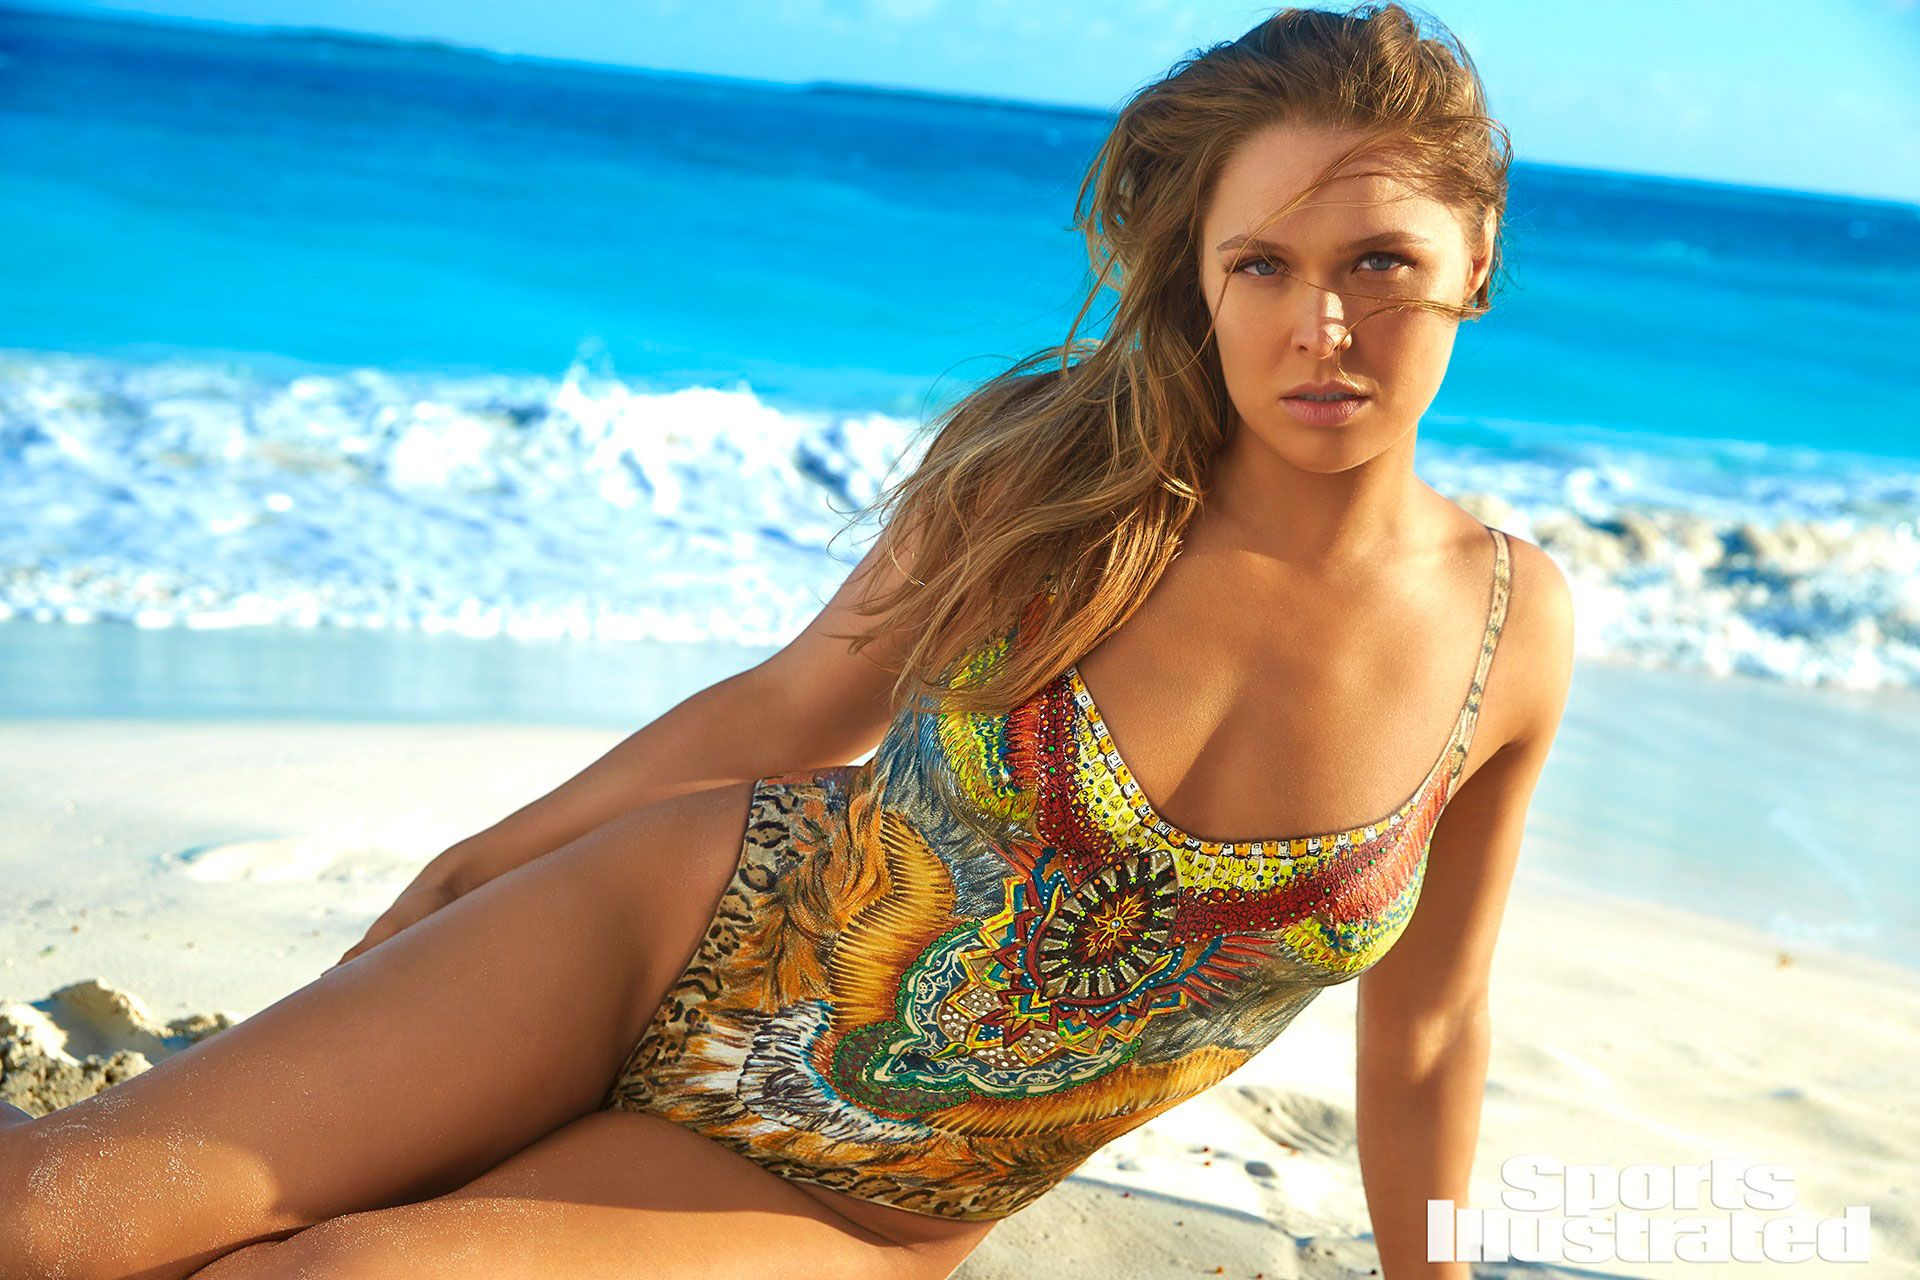 Ronda Rousey sexy leaks